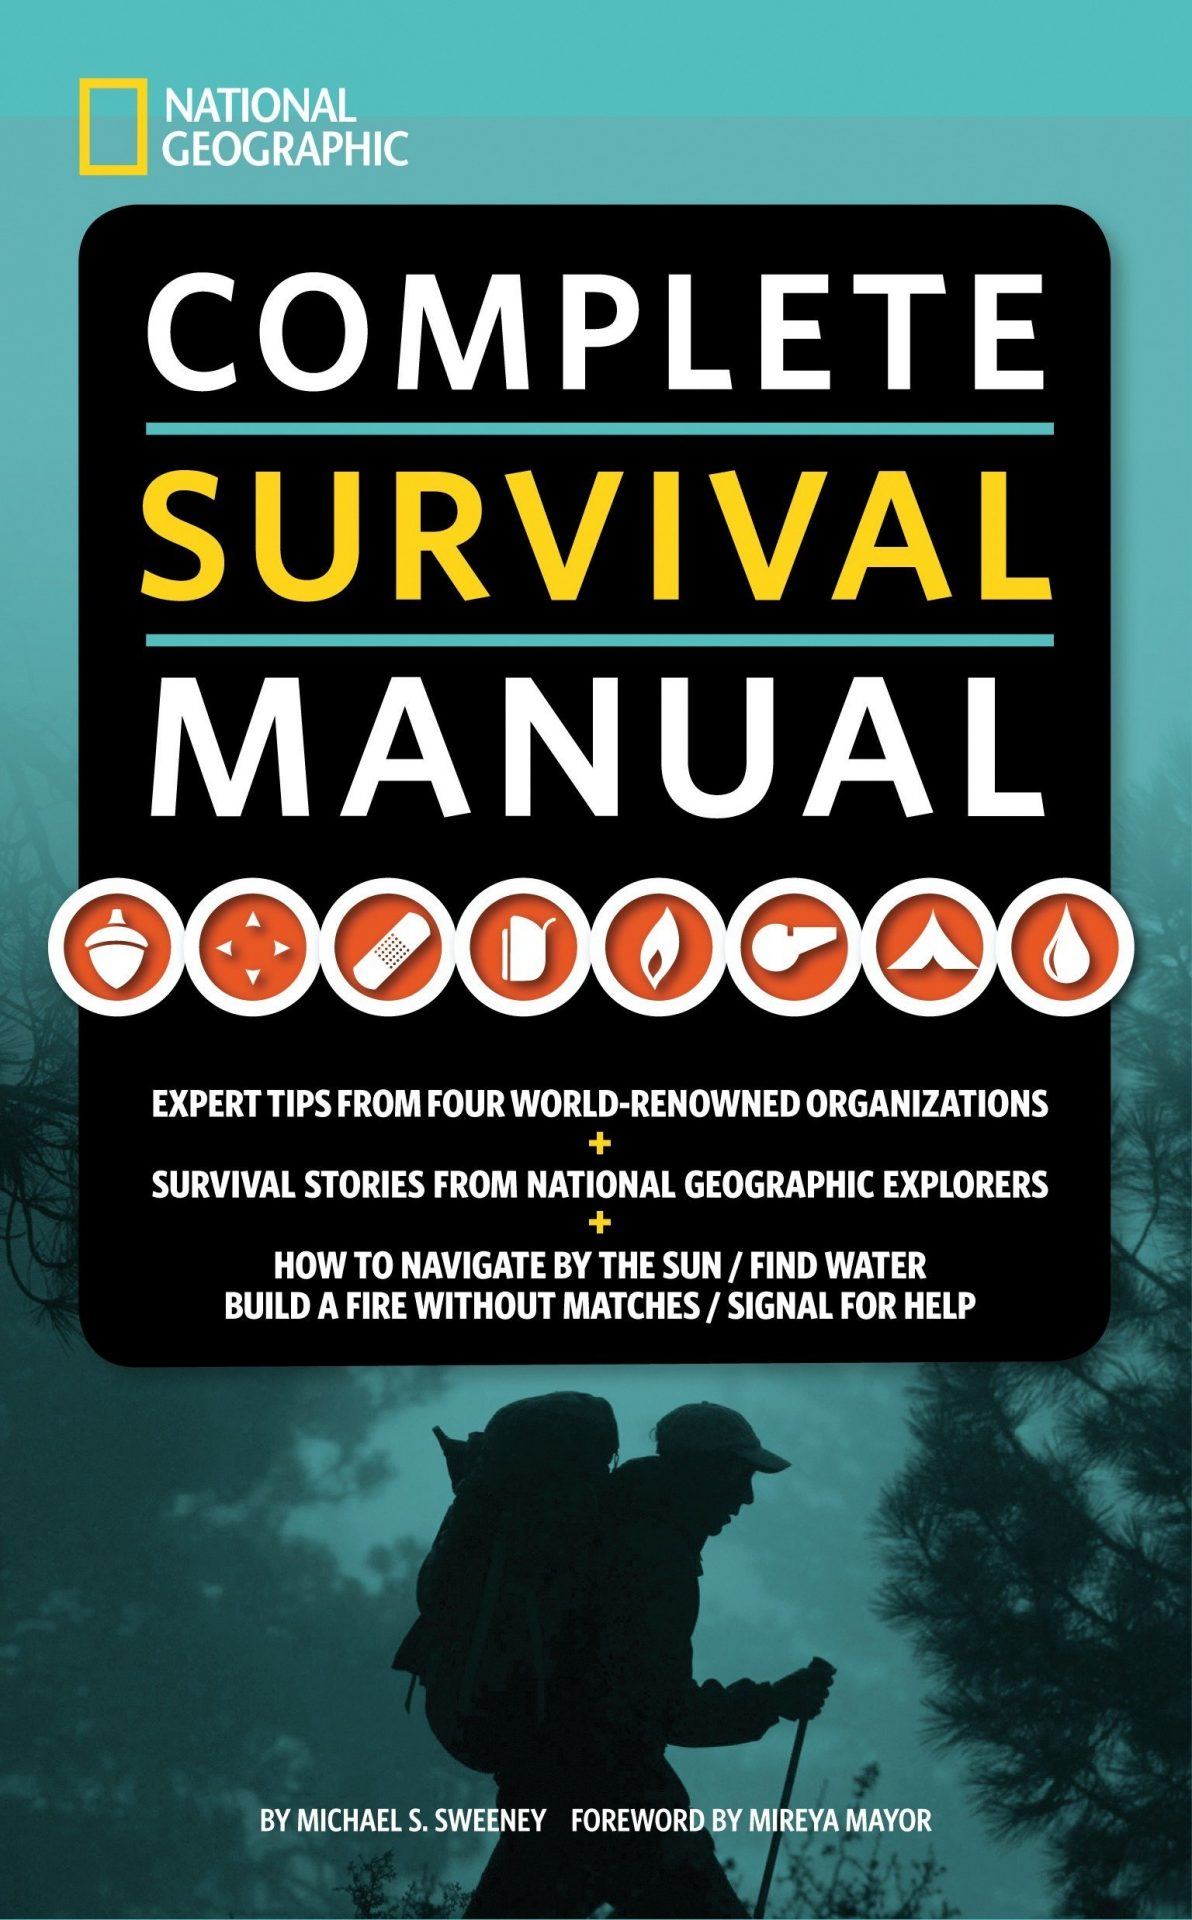 National Geographic's Complete Survival Manual